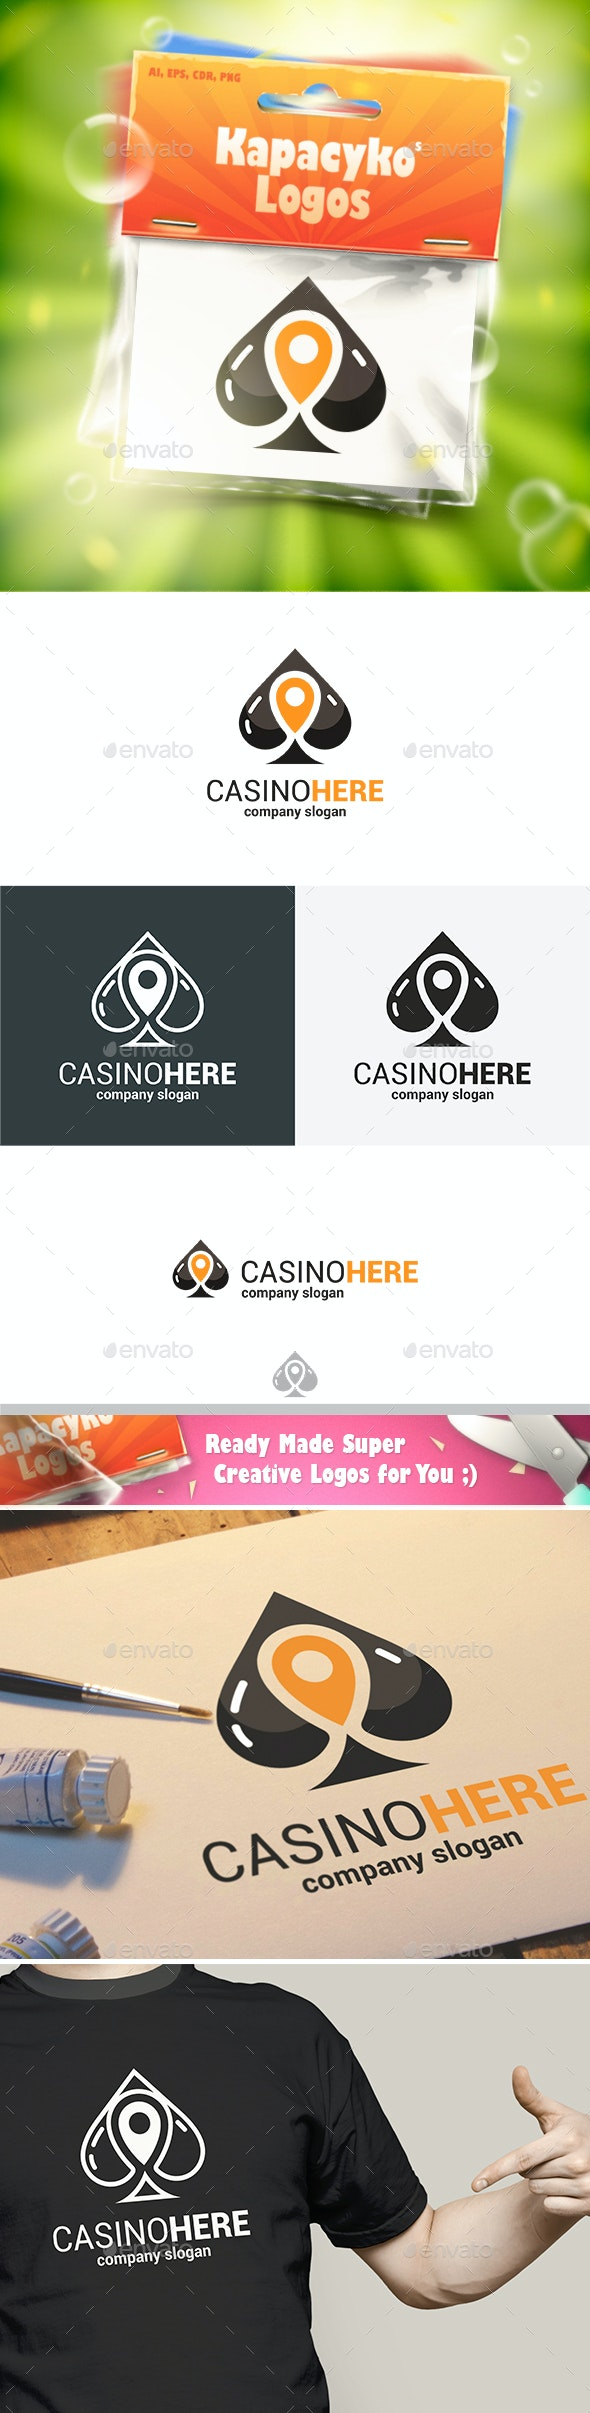 Casino Navigate Here Logo - Abstract Logo Templates